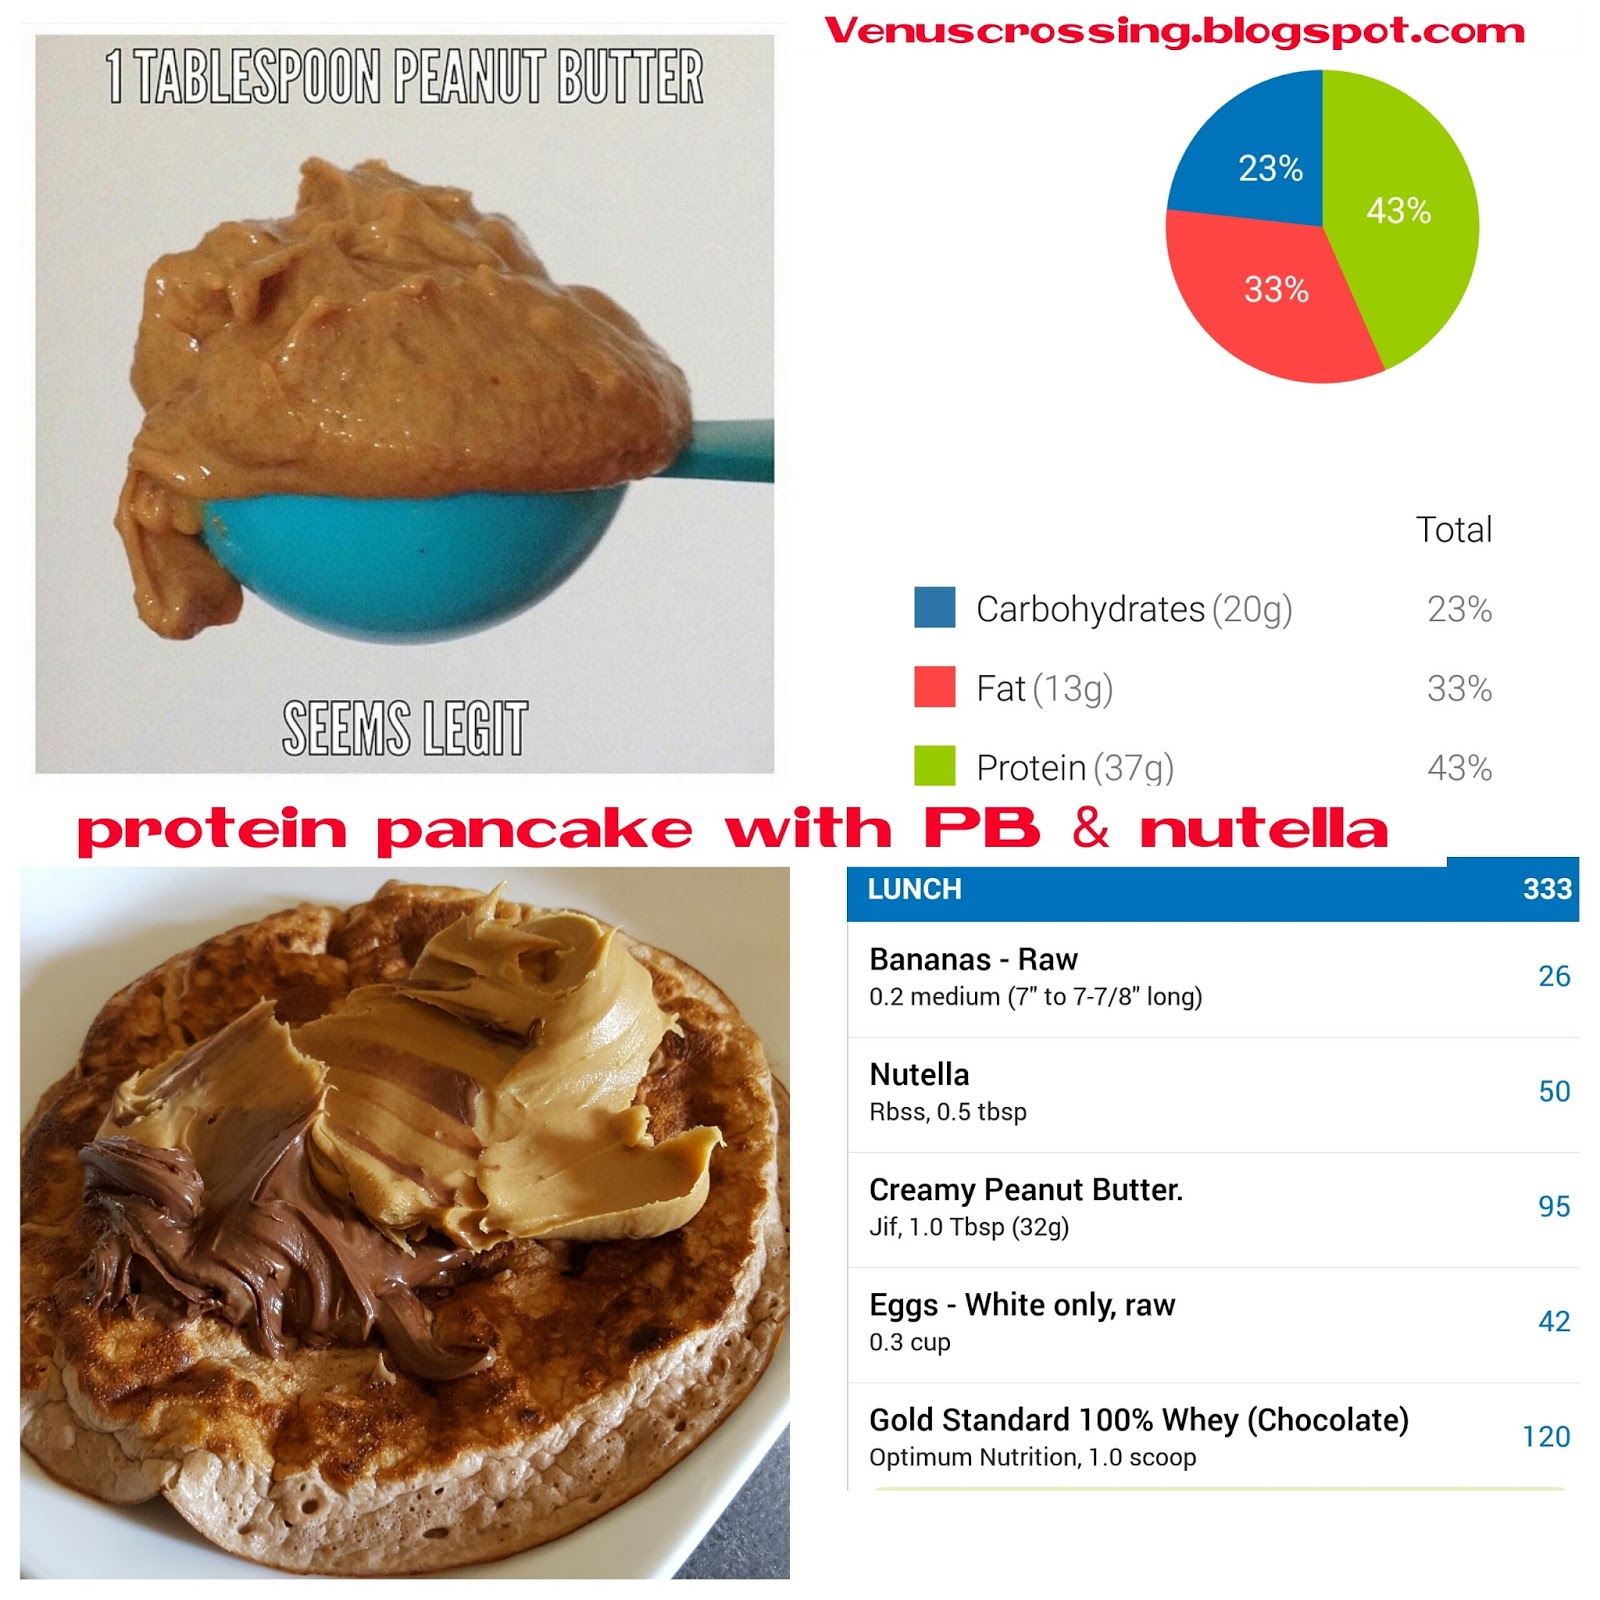 Venus Crossing with Liss: Protein Pancake with PB and Nutella